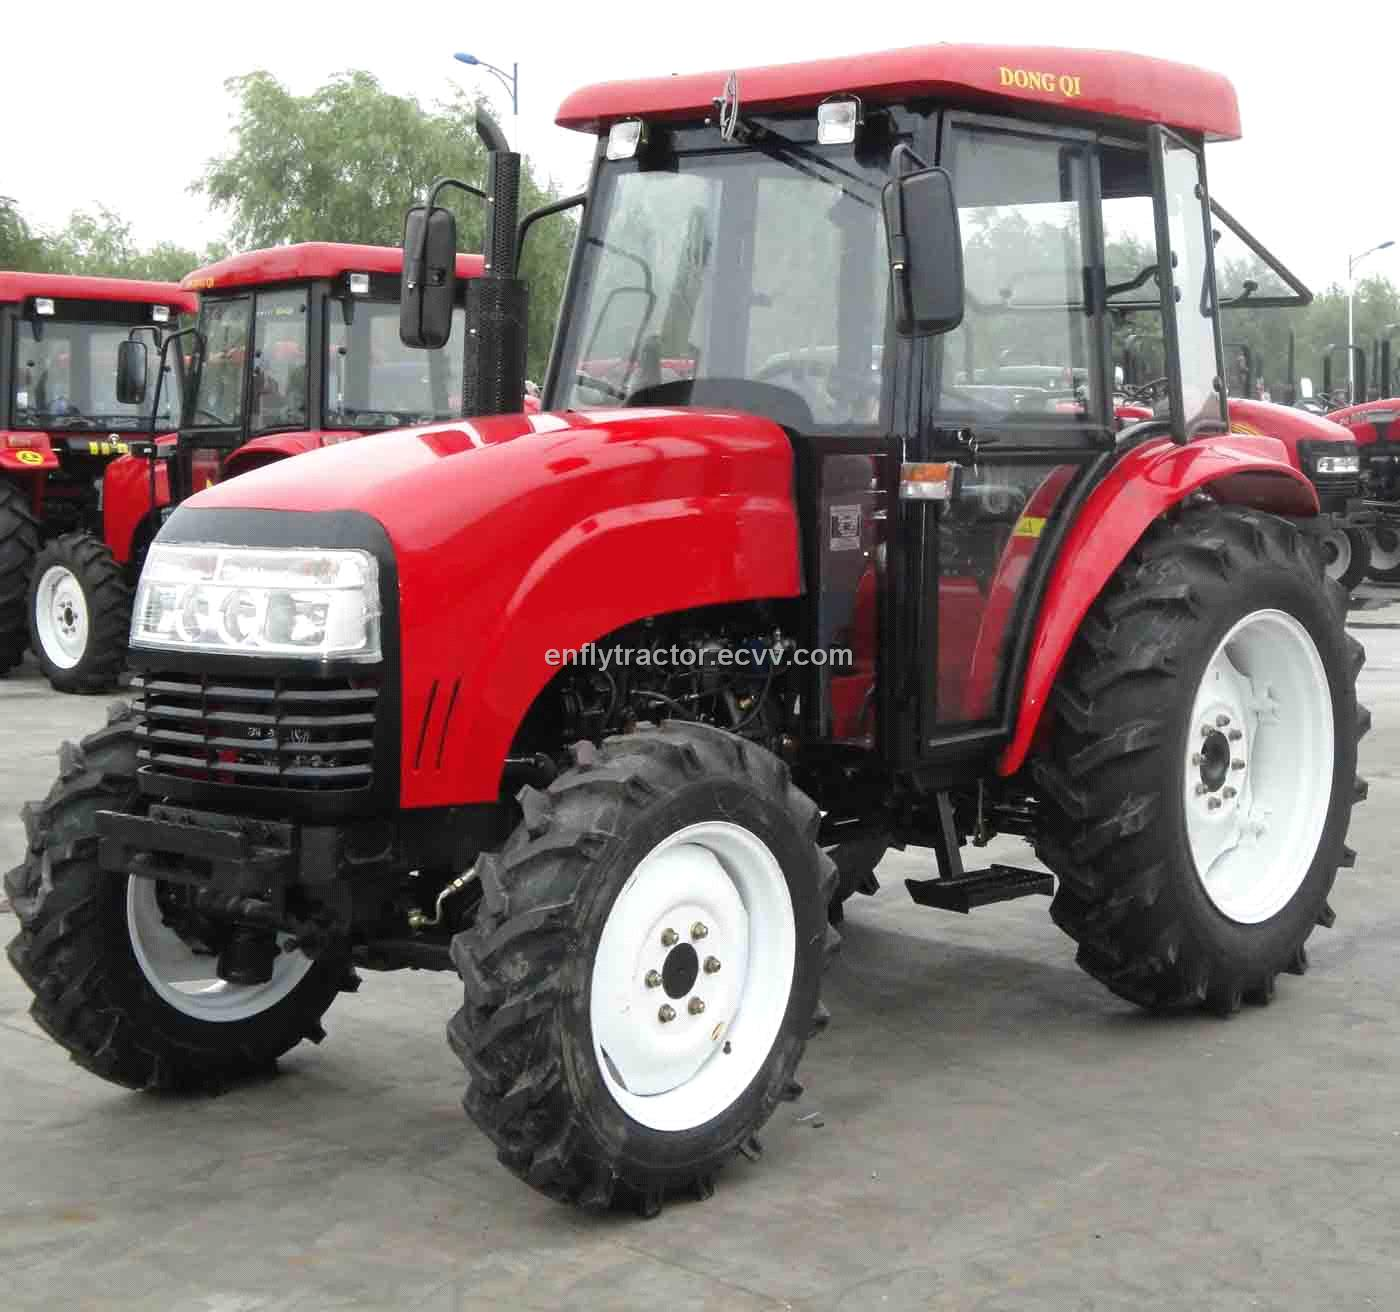 Wheeled Tractor 40hp from China Manufacturer, Manufactory, Factory and Supplier on ECVV.com1400 x 1312 jpeg 139kB